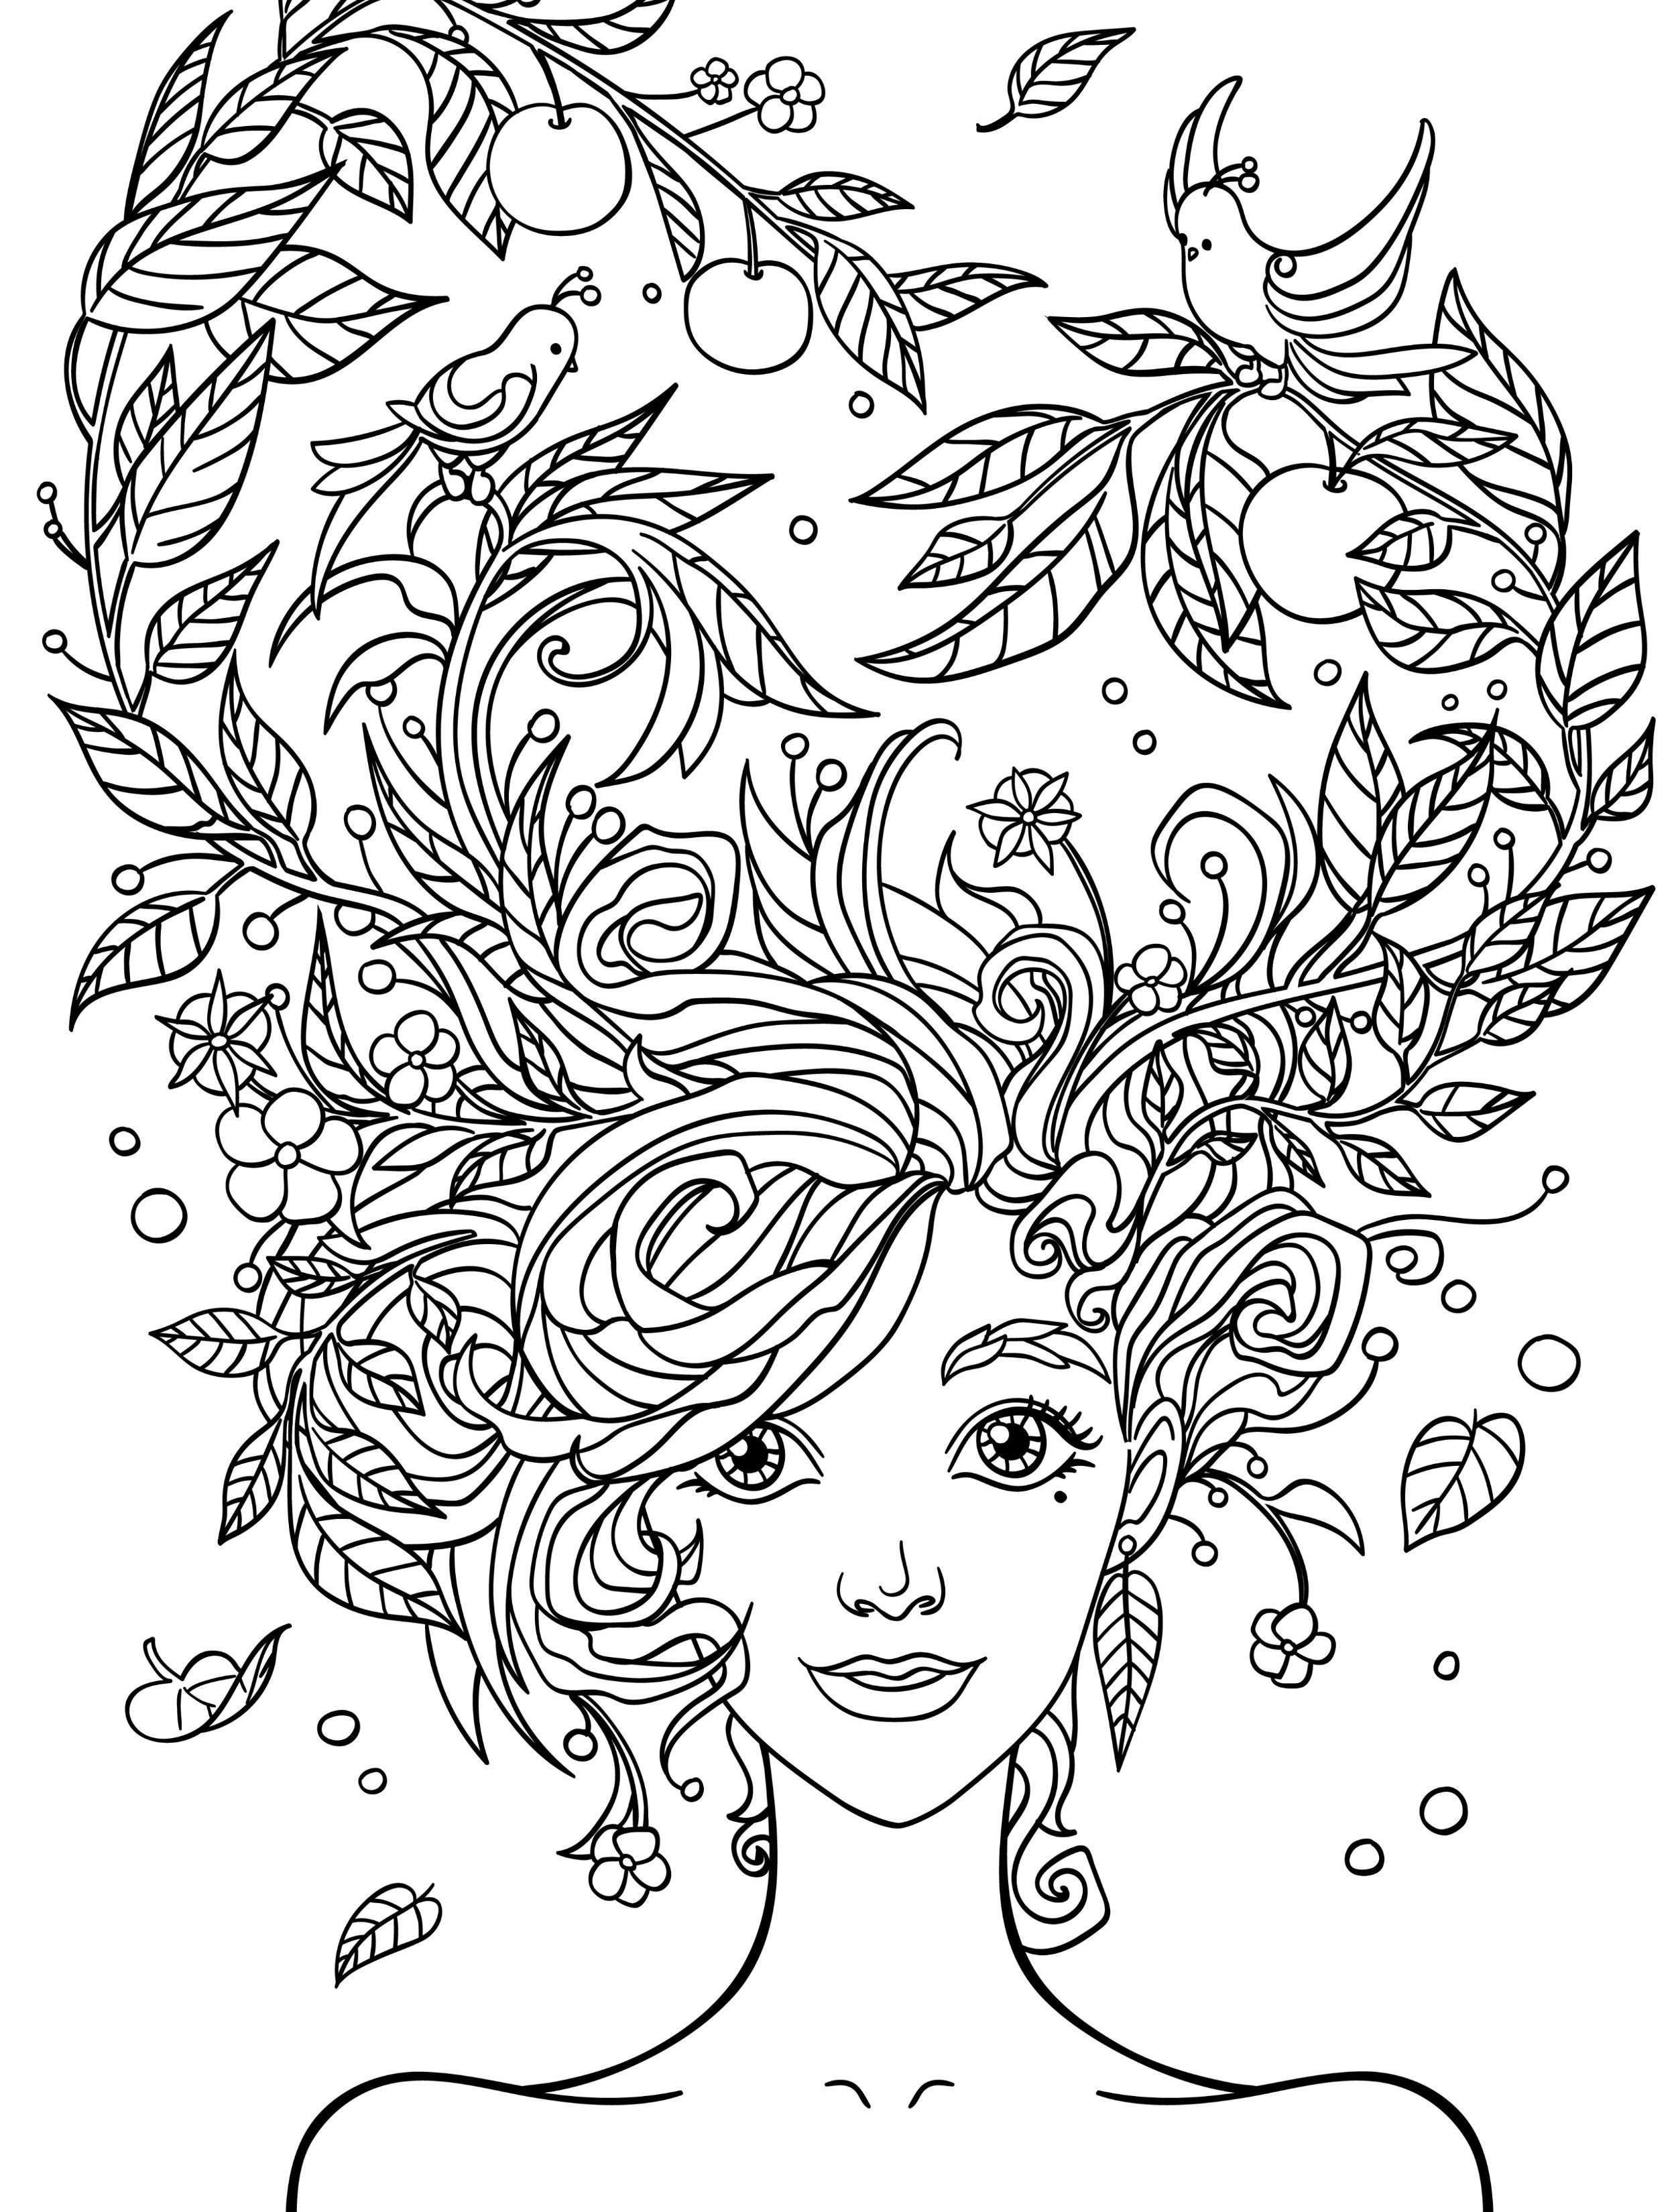 10 Crazy Hair Adult Coloring Pages Mermaid coloring